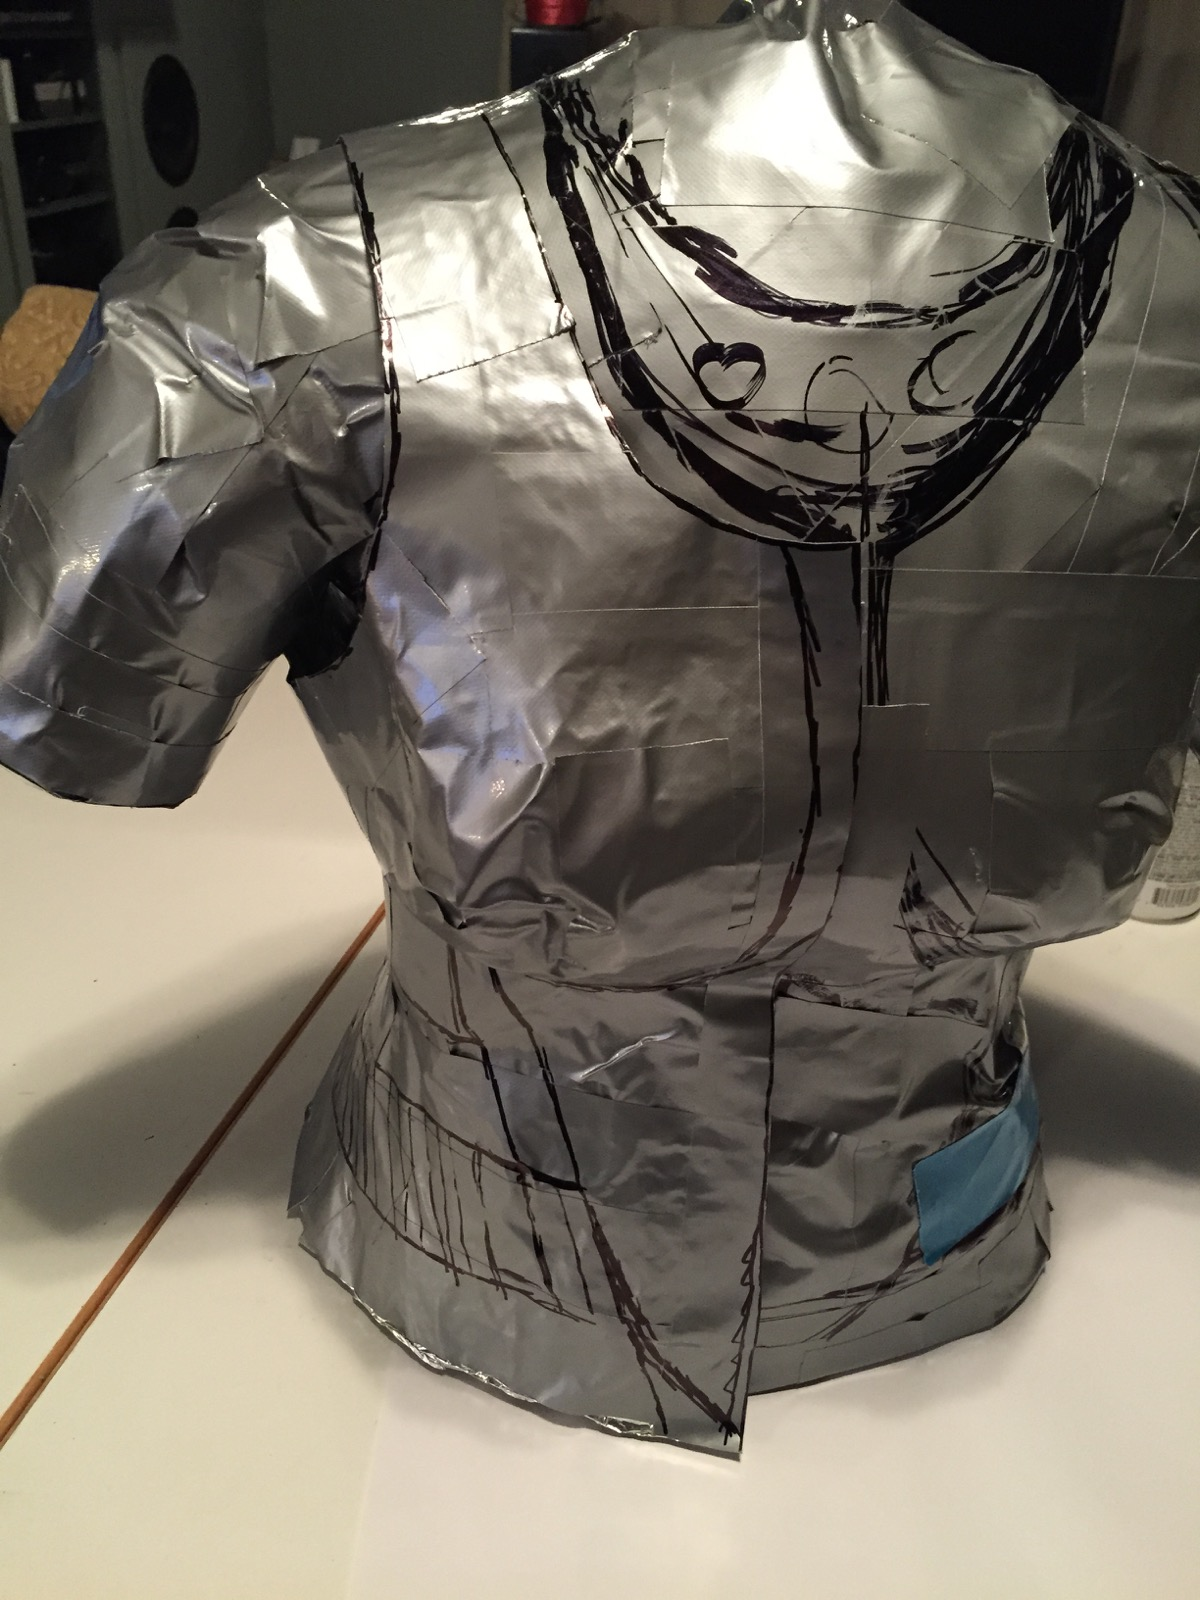 Duct-tape pattern made from wrapping the dummy with cellophane then covering that with duct-tape.